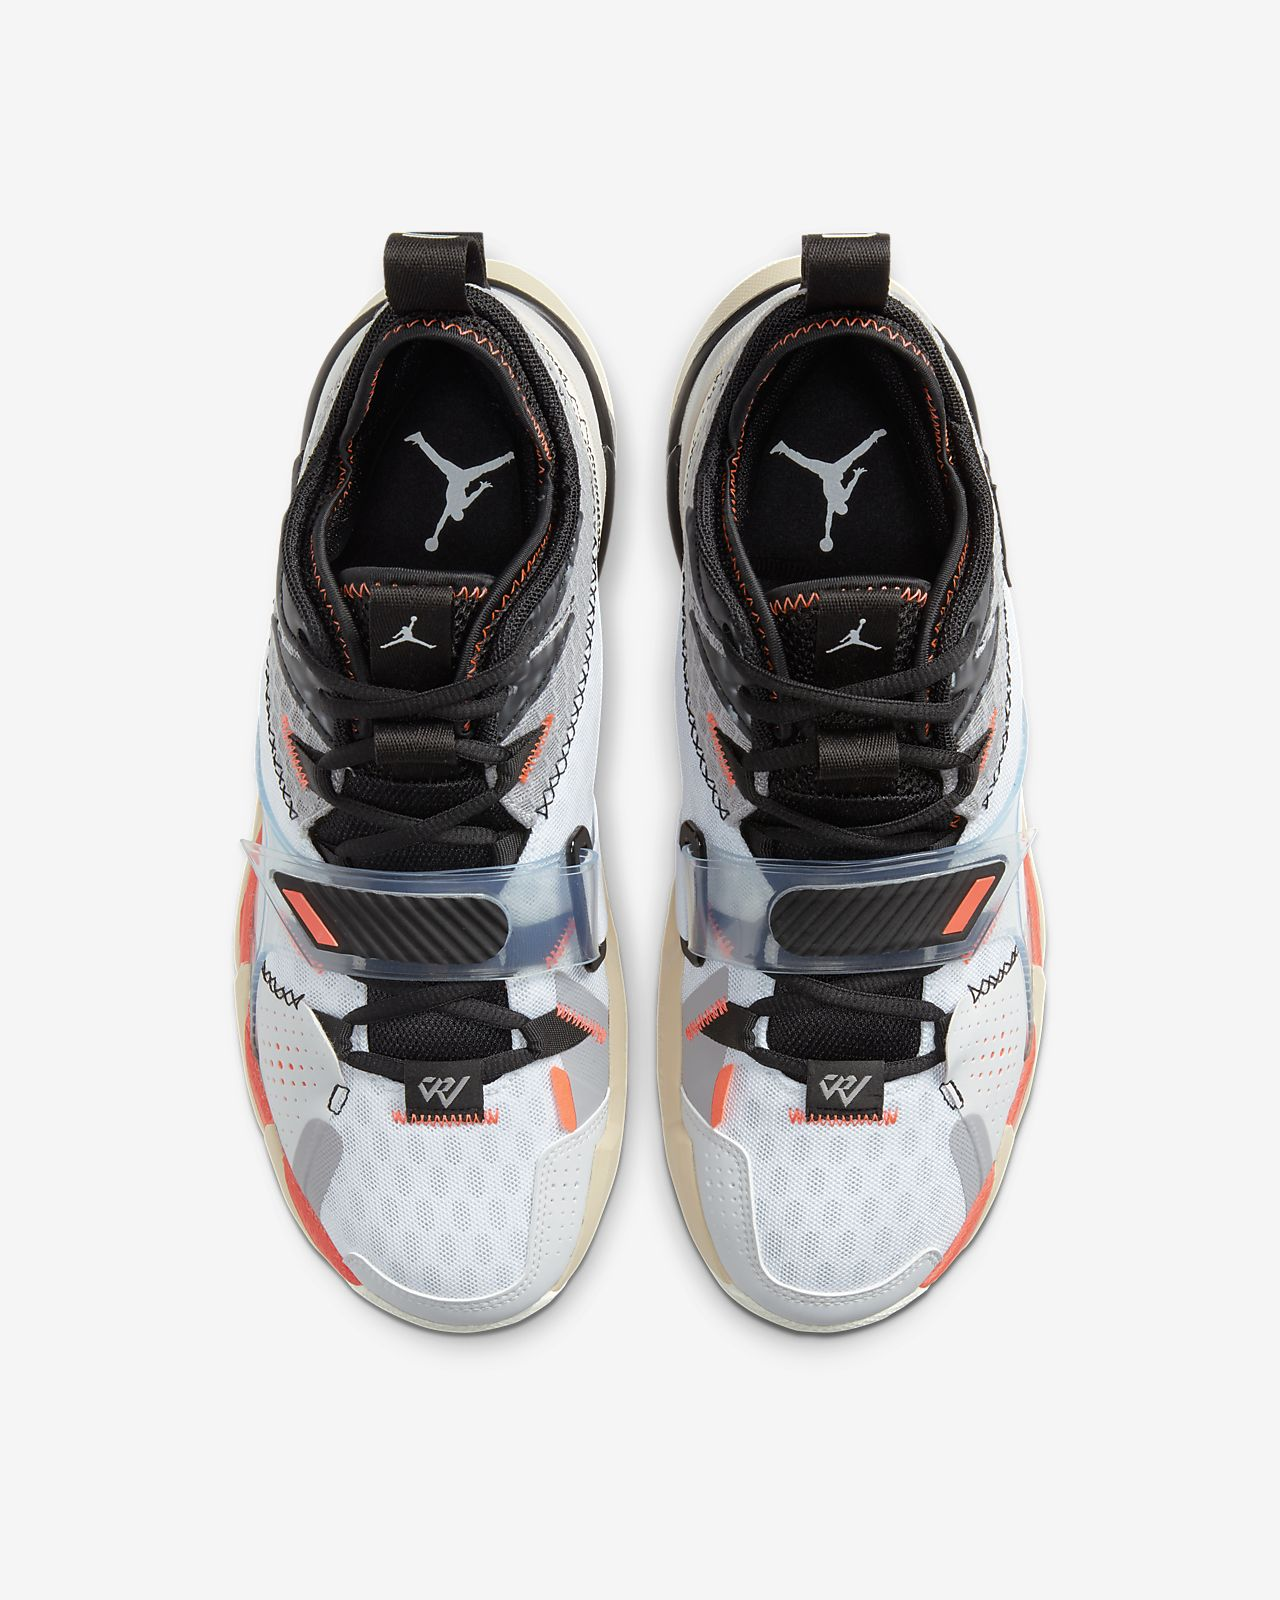 Jordan 'Why Not?' Zer0.3 Men's Basketball Shoe